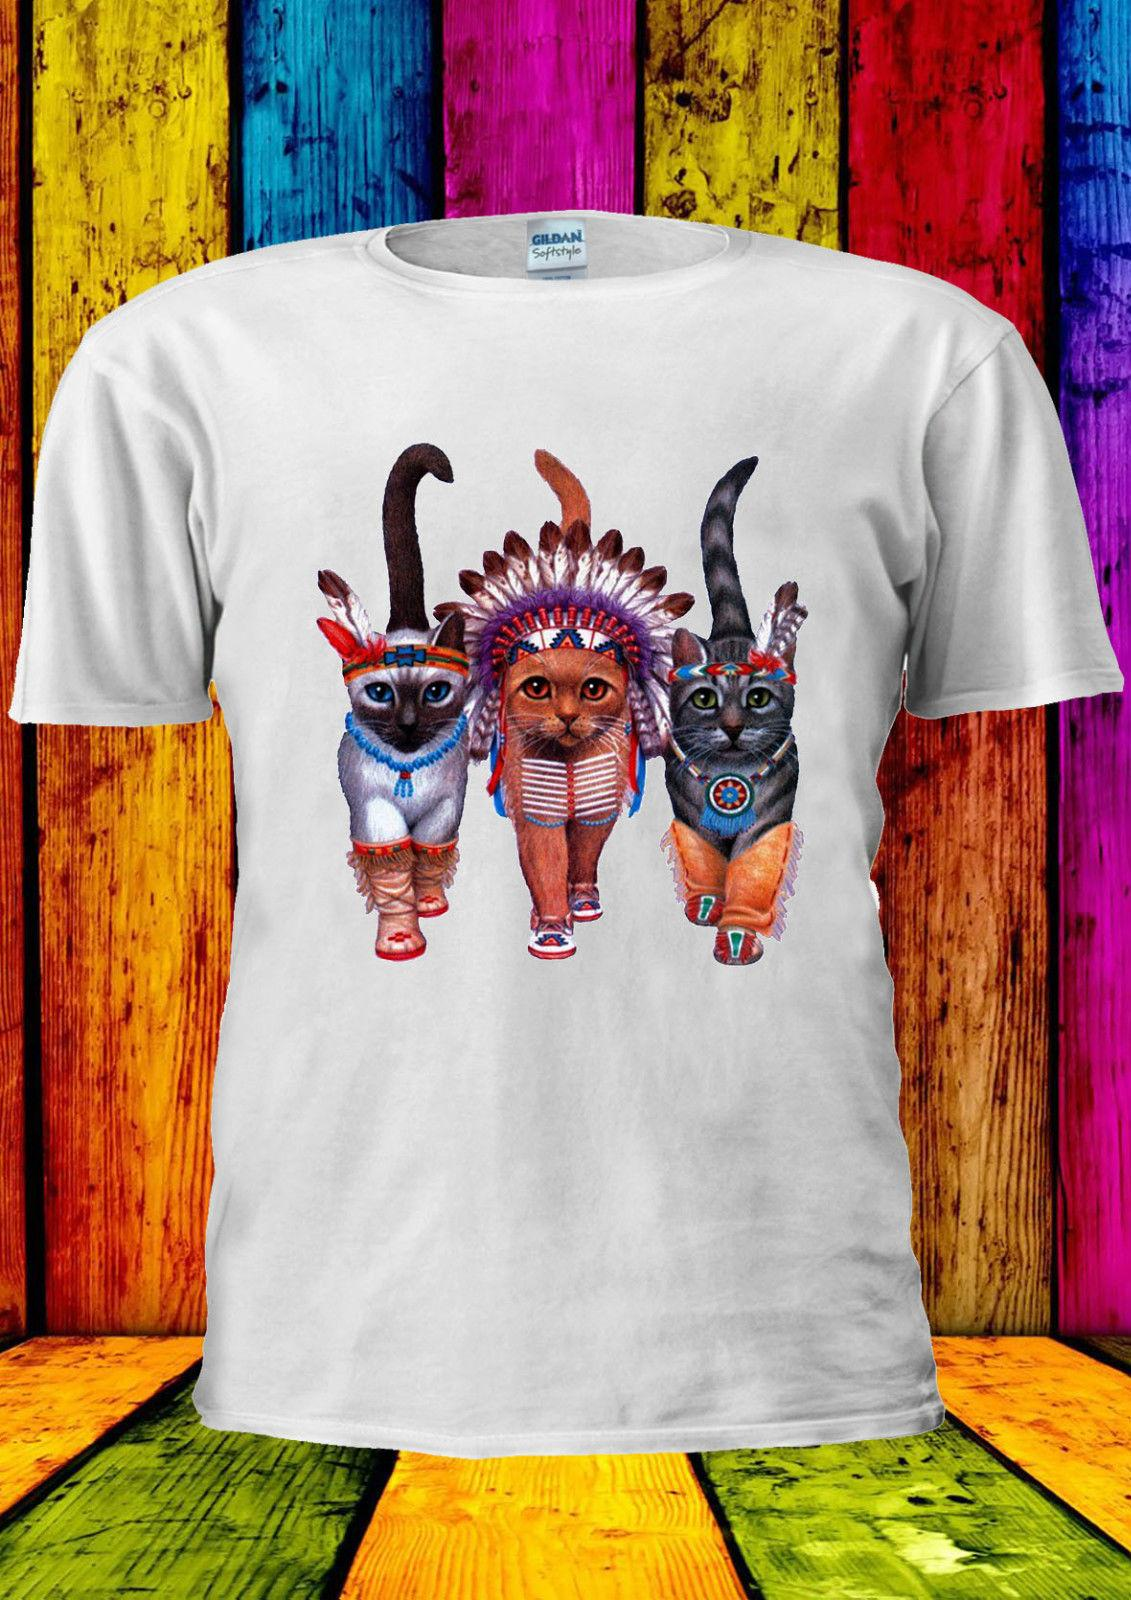 8690509b Mob Of Cats Indian Funny Novelty T Shirt Vest Tank Top Men Women Unisex  2329 Cool Sweatshirts Online Random Funny T Shirts From Moviethirt, $15.72|  DHgate.